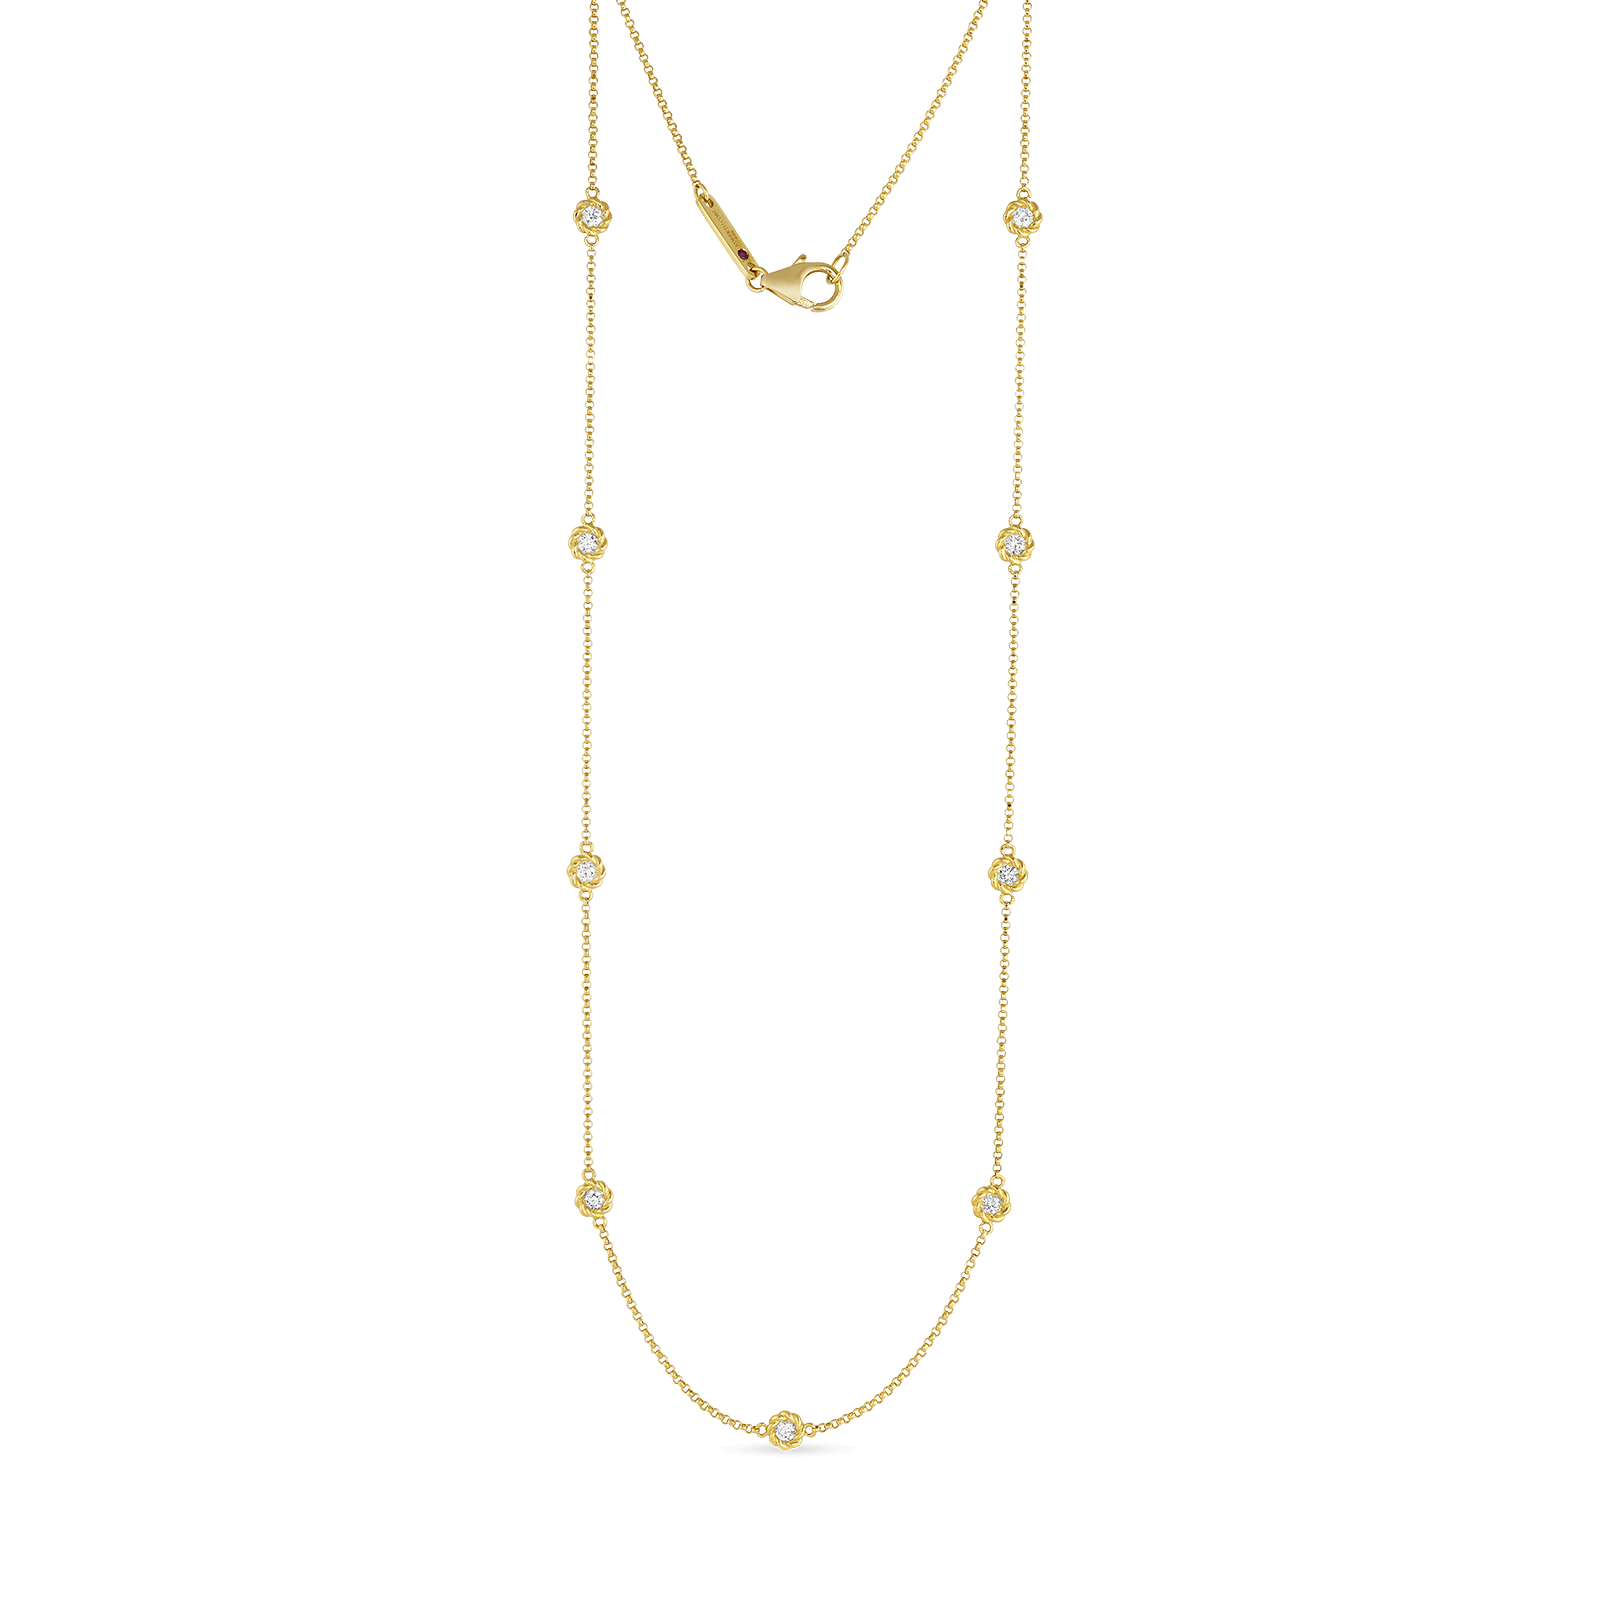 long necklace png